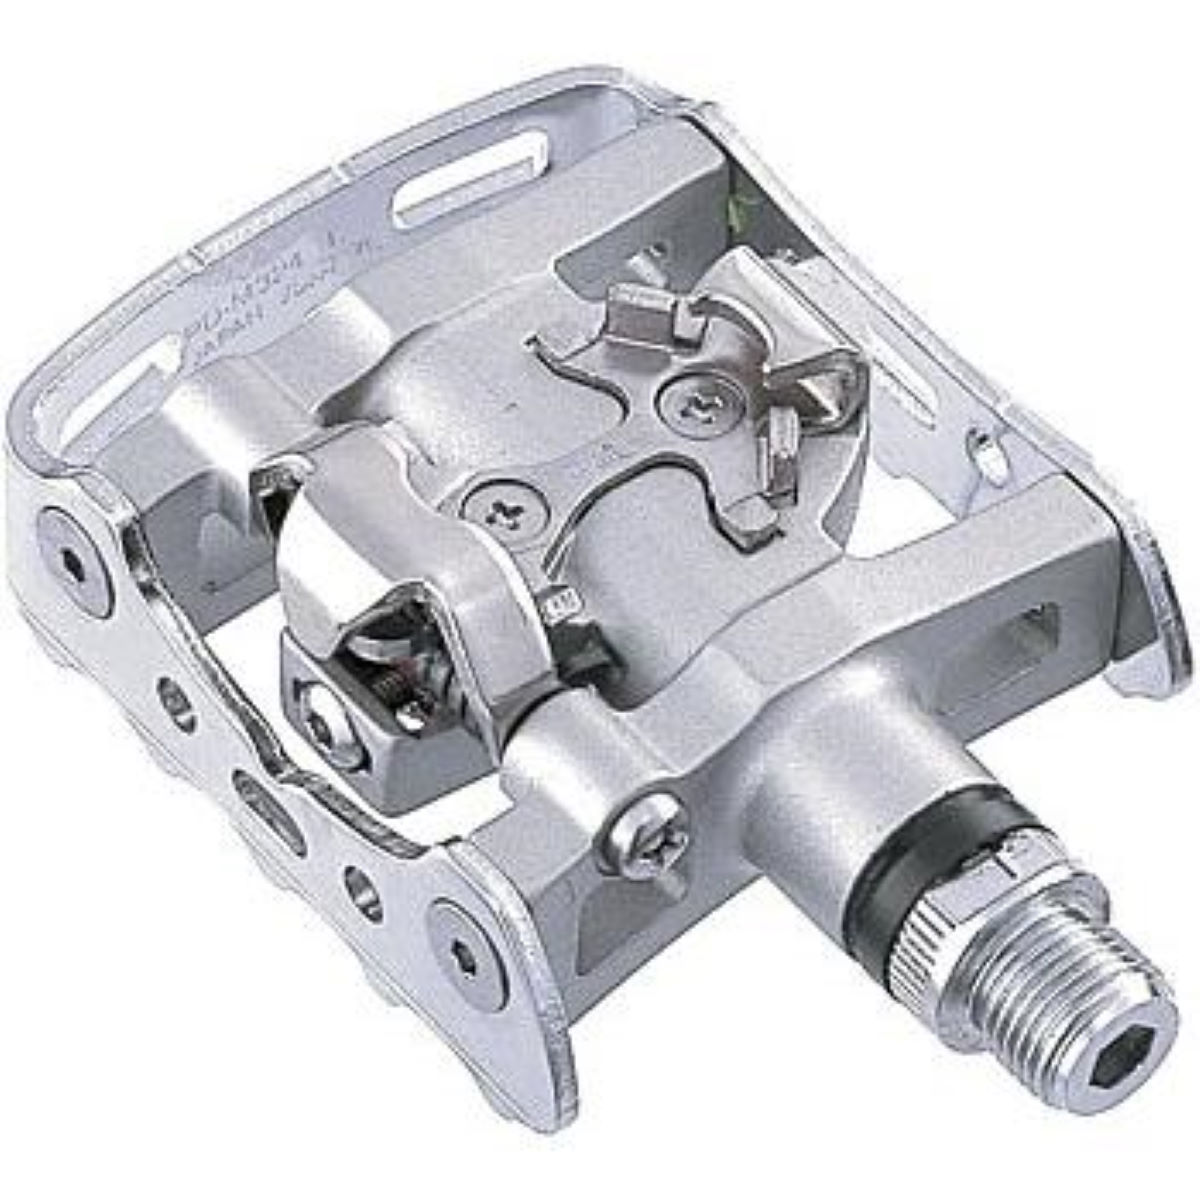 Shimano M324 Combination Pedals